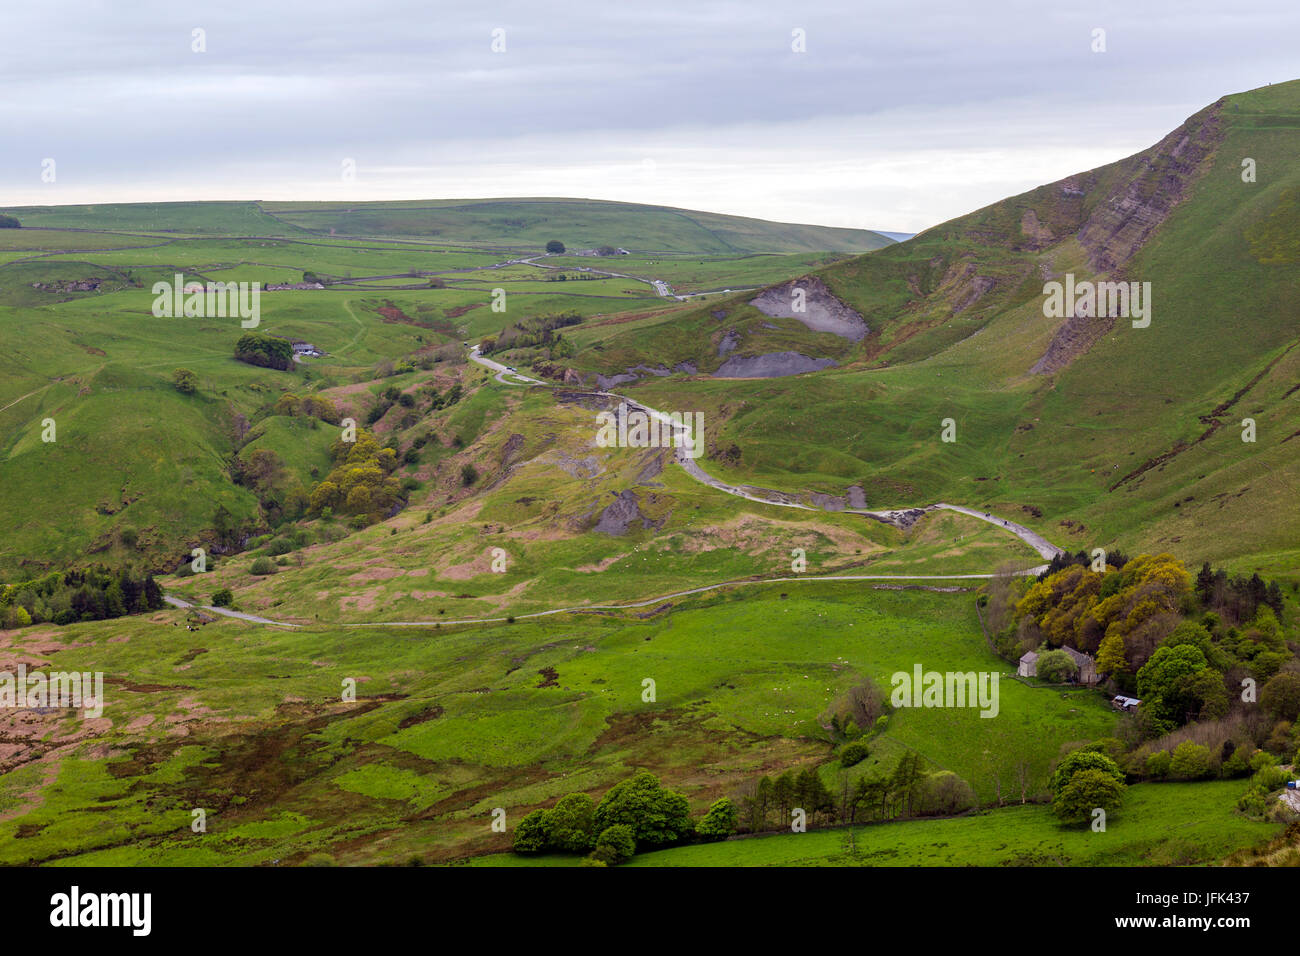 The former A625 crossed the landslips below Mam Tor in Castleton, Derbyshire but was finally abandoned in 1979 due - Stock Image